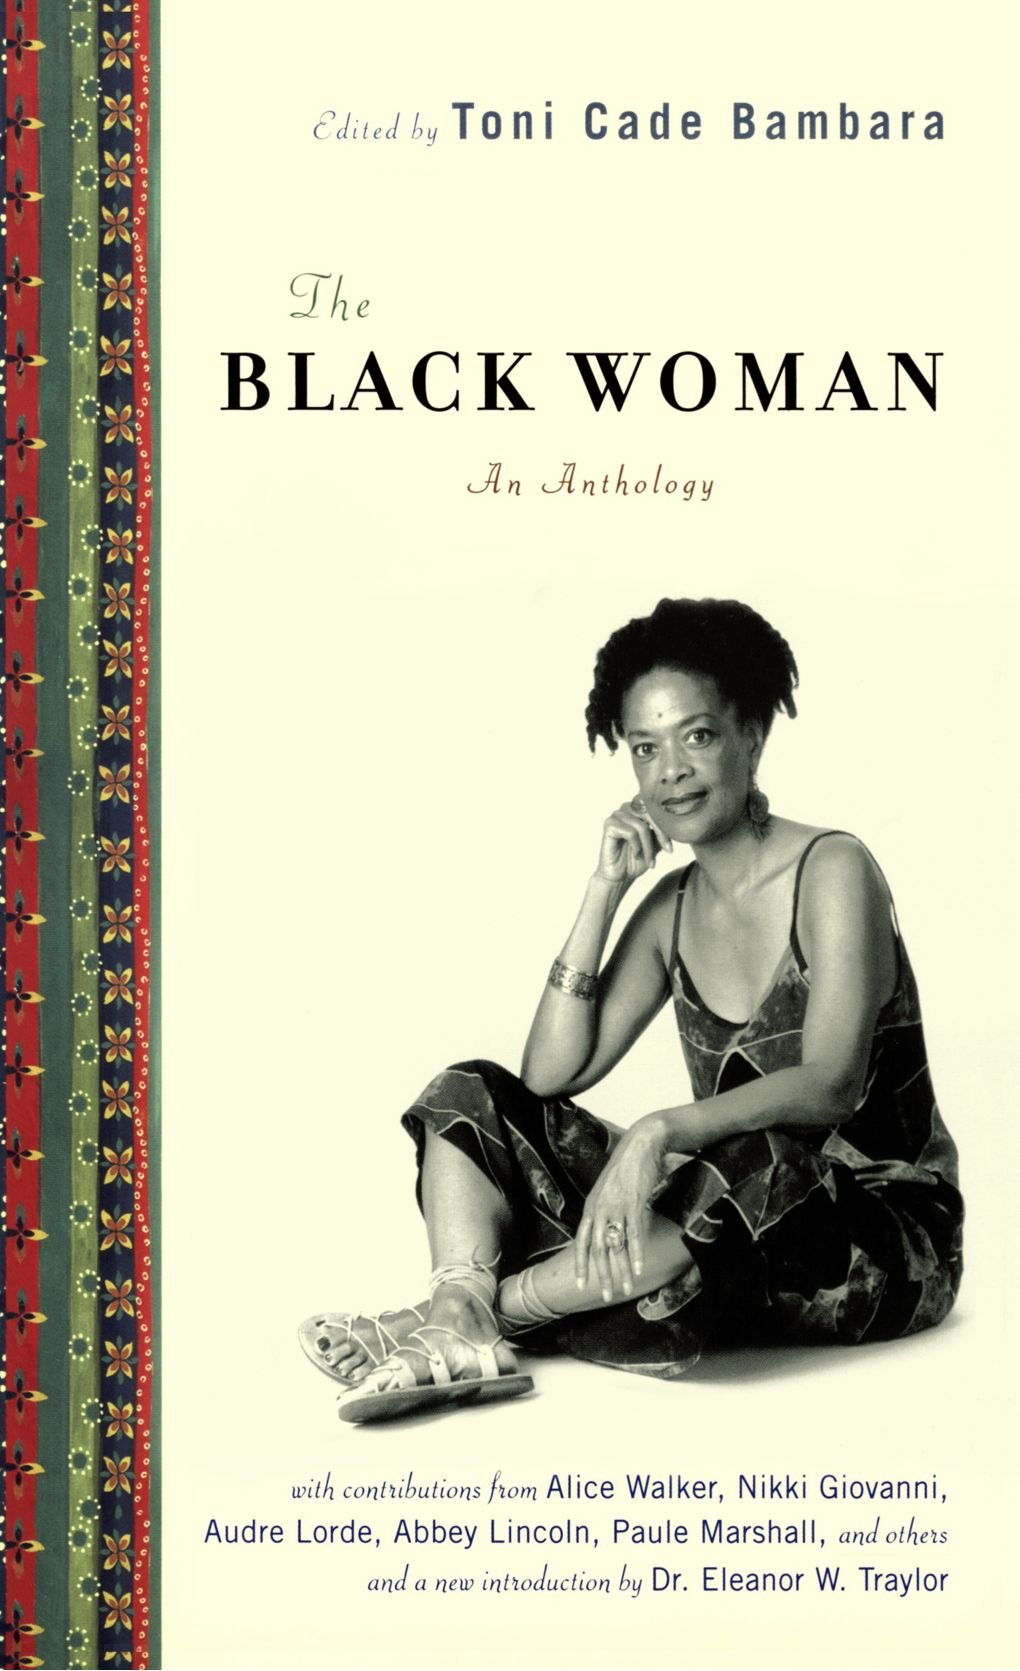 The Black Woman: An Anthology Edited by Toni Cade Bambara